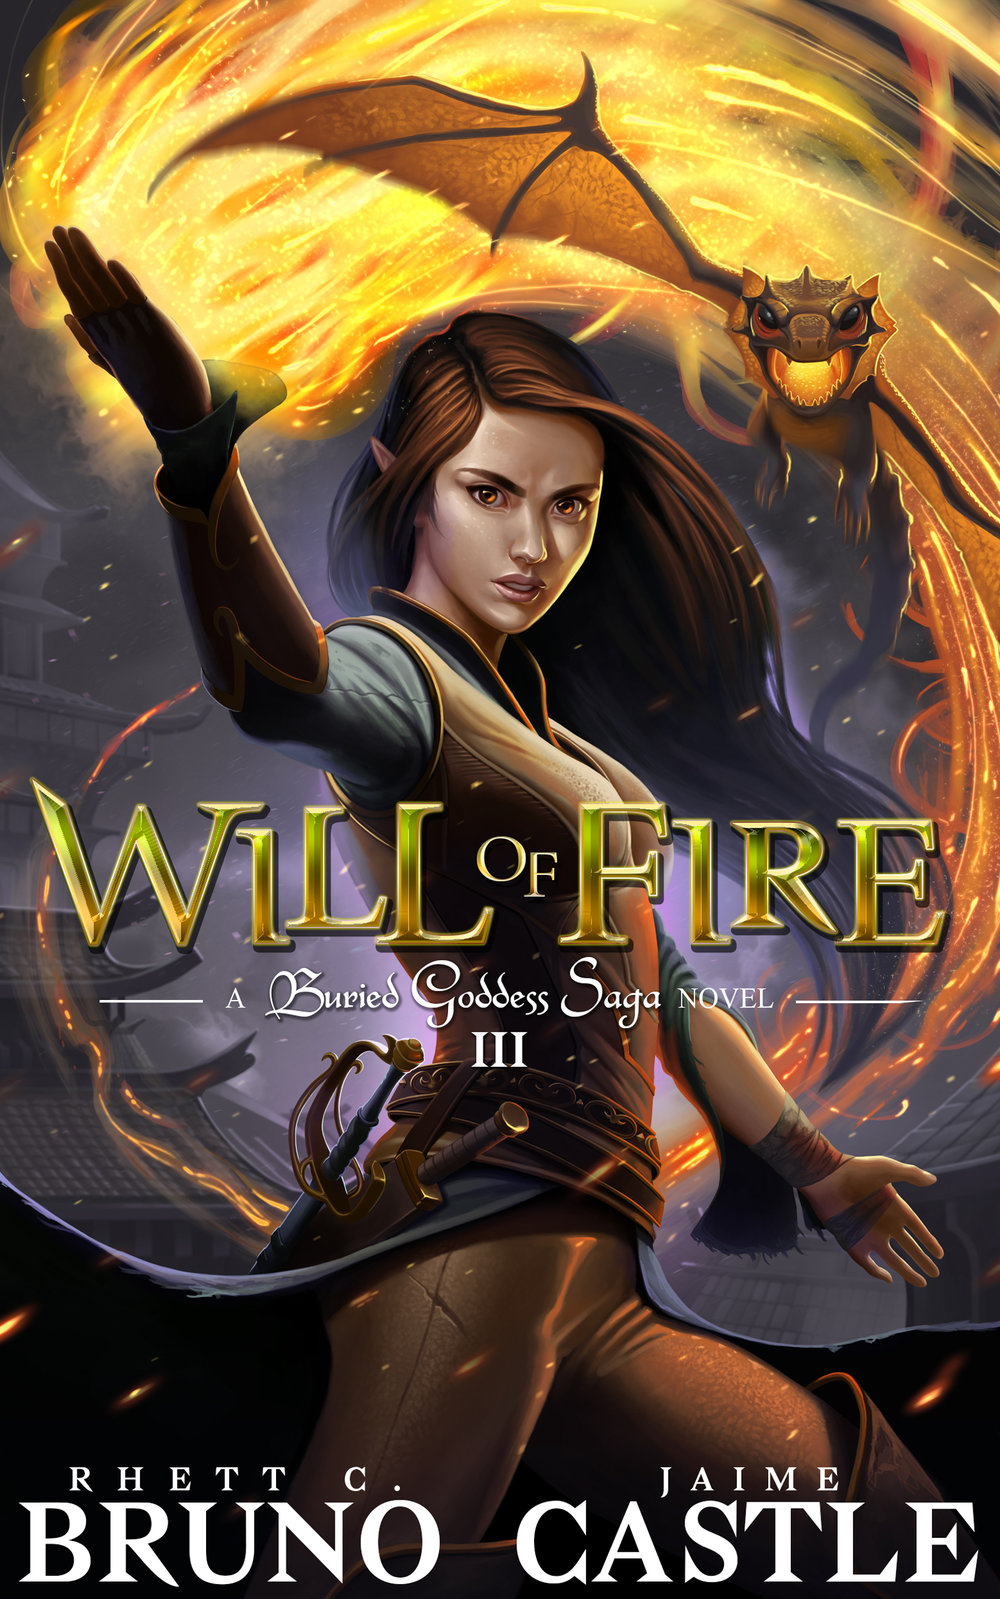 Will of Fire   Buried Goddess Saga Book 3  Rhett C. Bruno & Jaime Castle